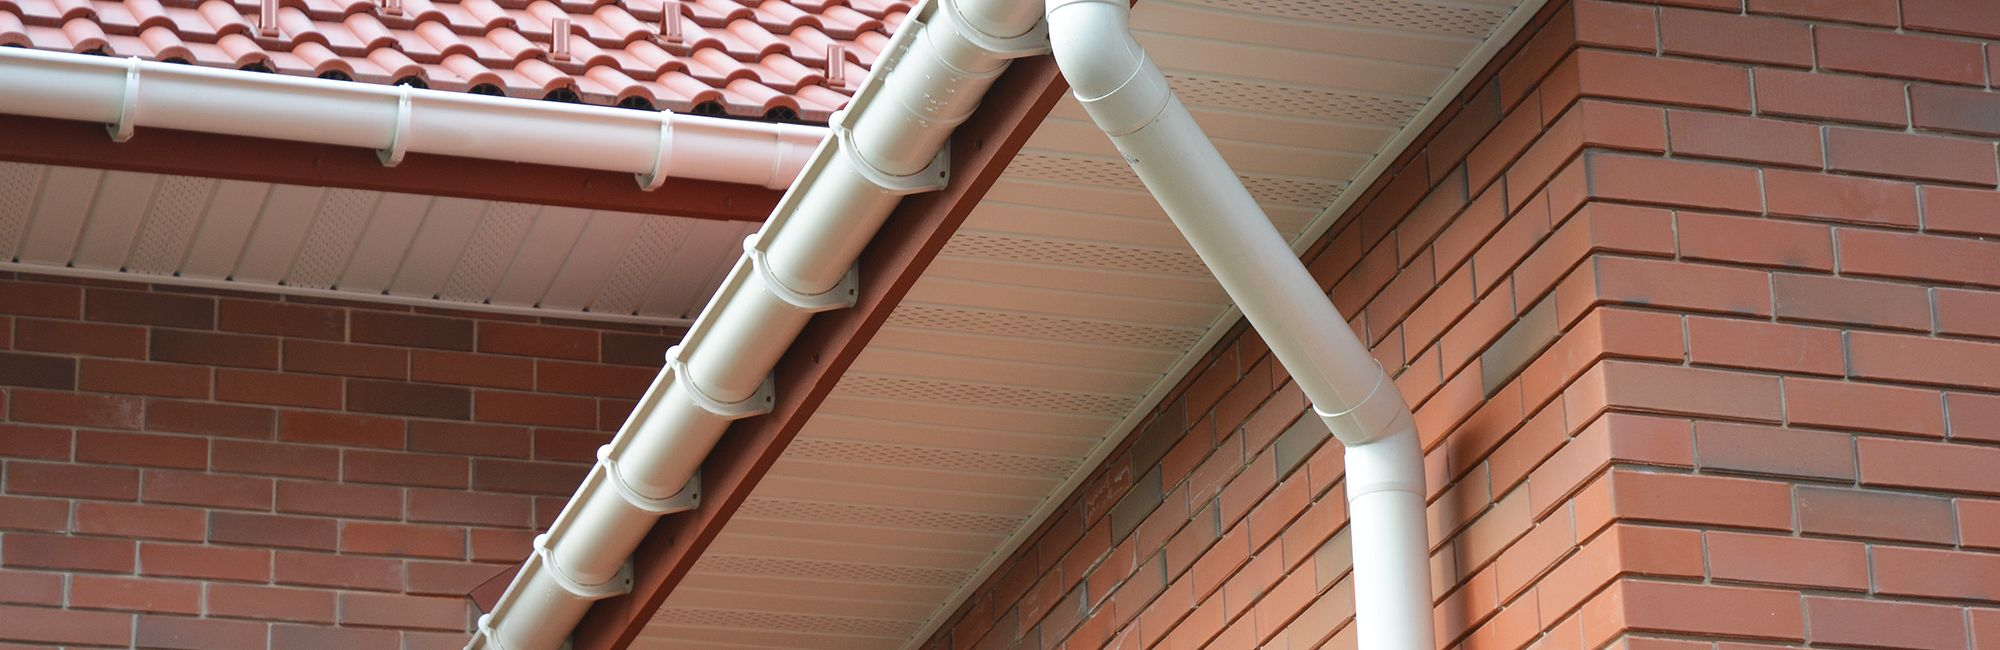 Fascias, Porches & Canopies